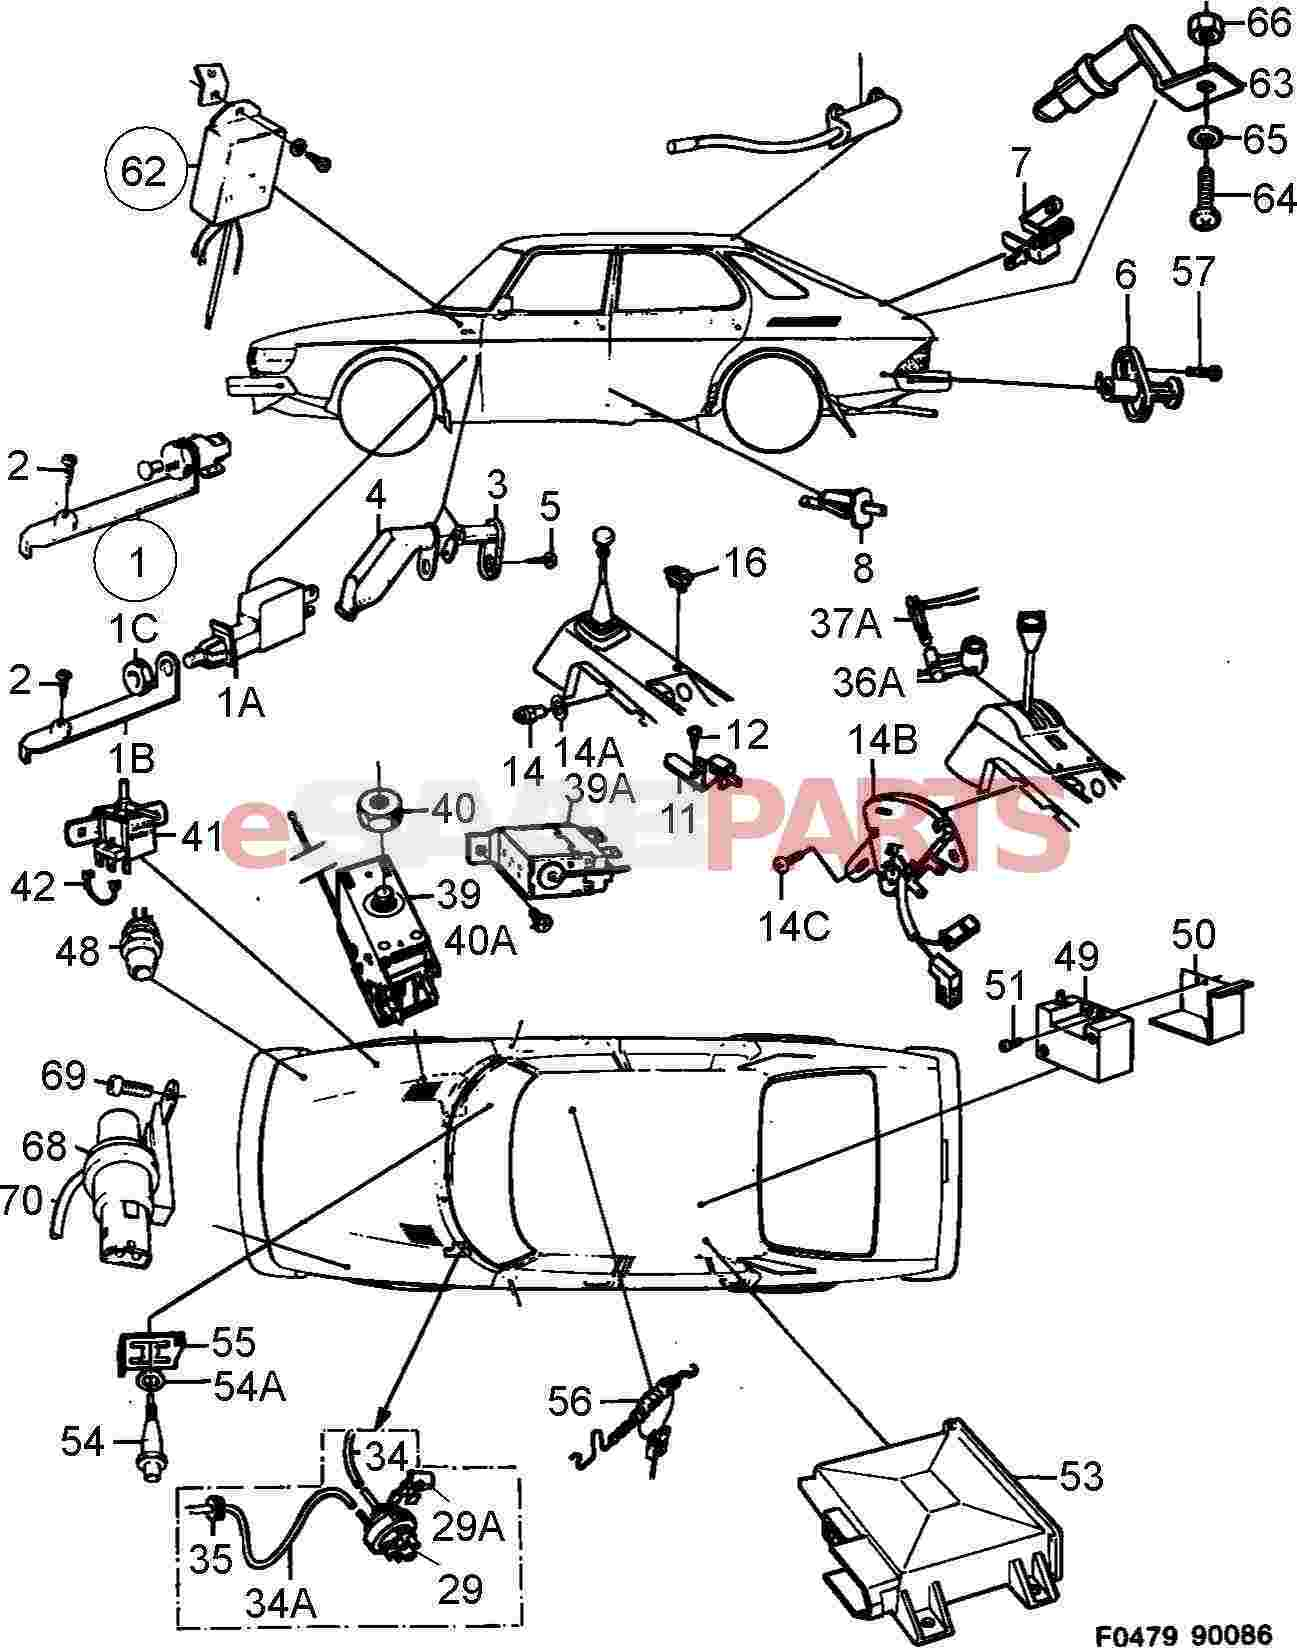 1981 Buick Wiring Diagram | Wiring Library